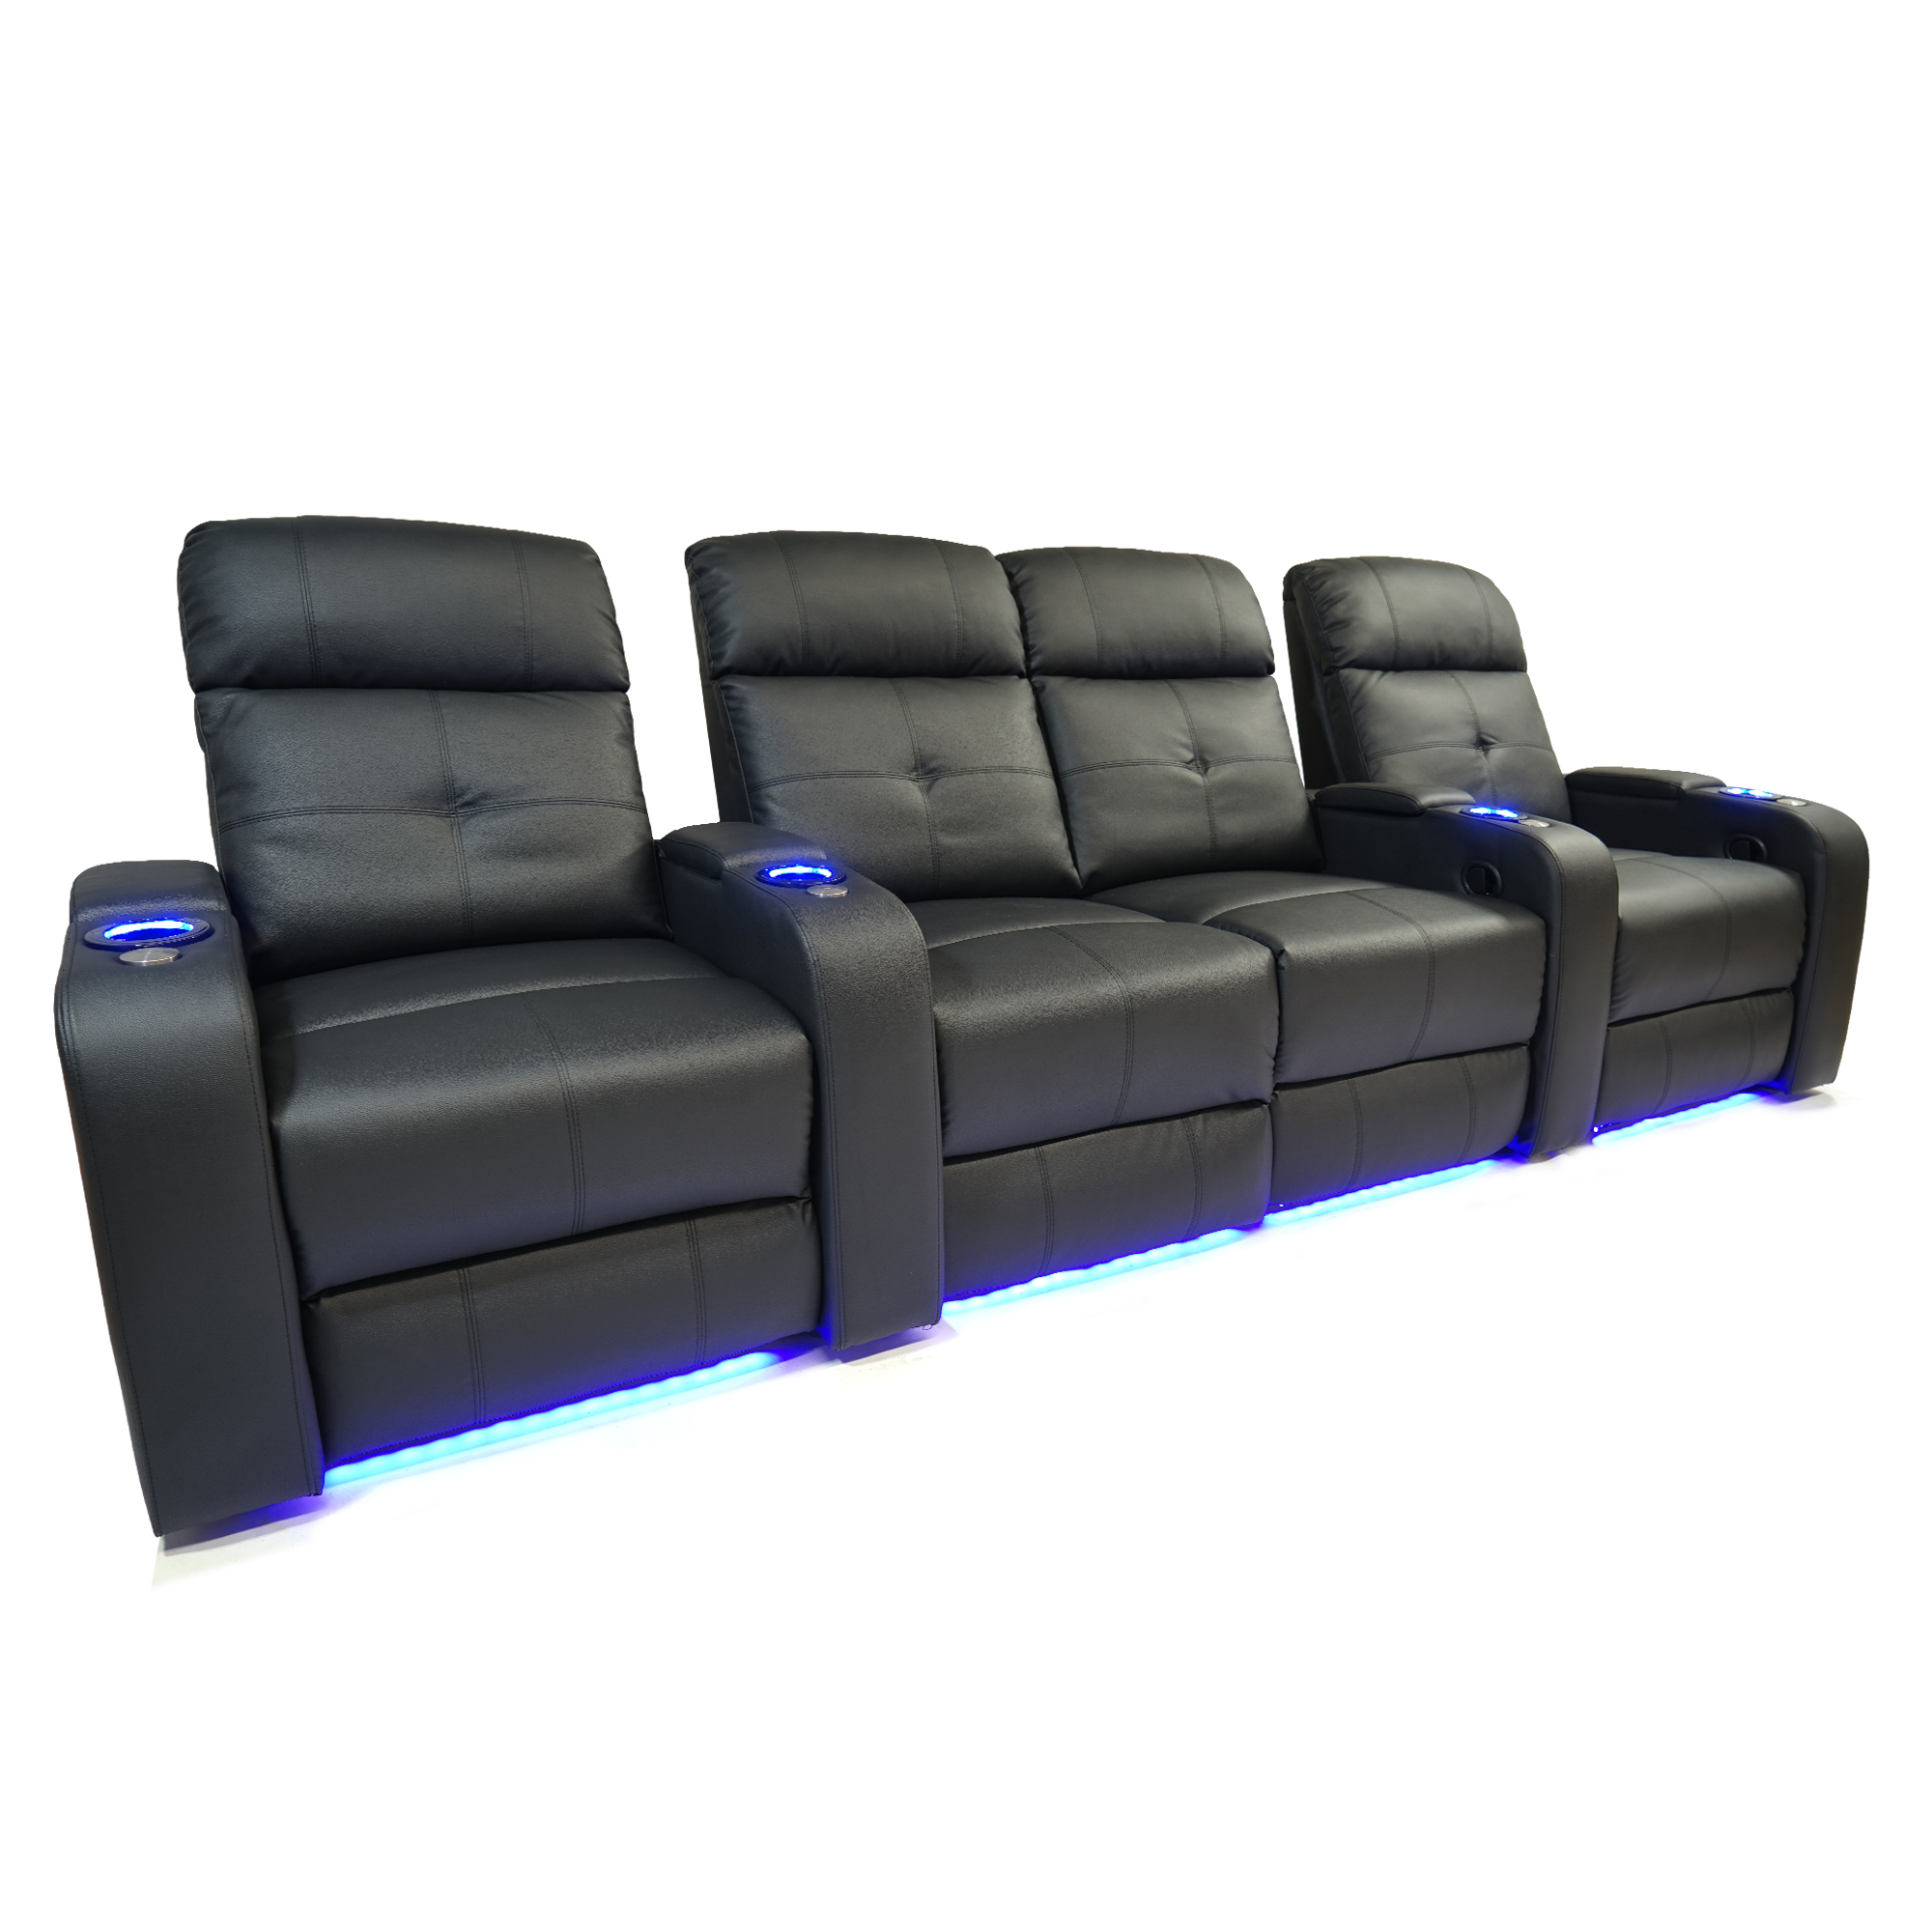 Valencia Verona Top Grain Leather LED Power Home Theatre Seating Row of Four Love Seat Centre - 4 seat - image 6 de 6